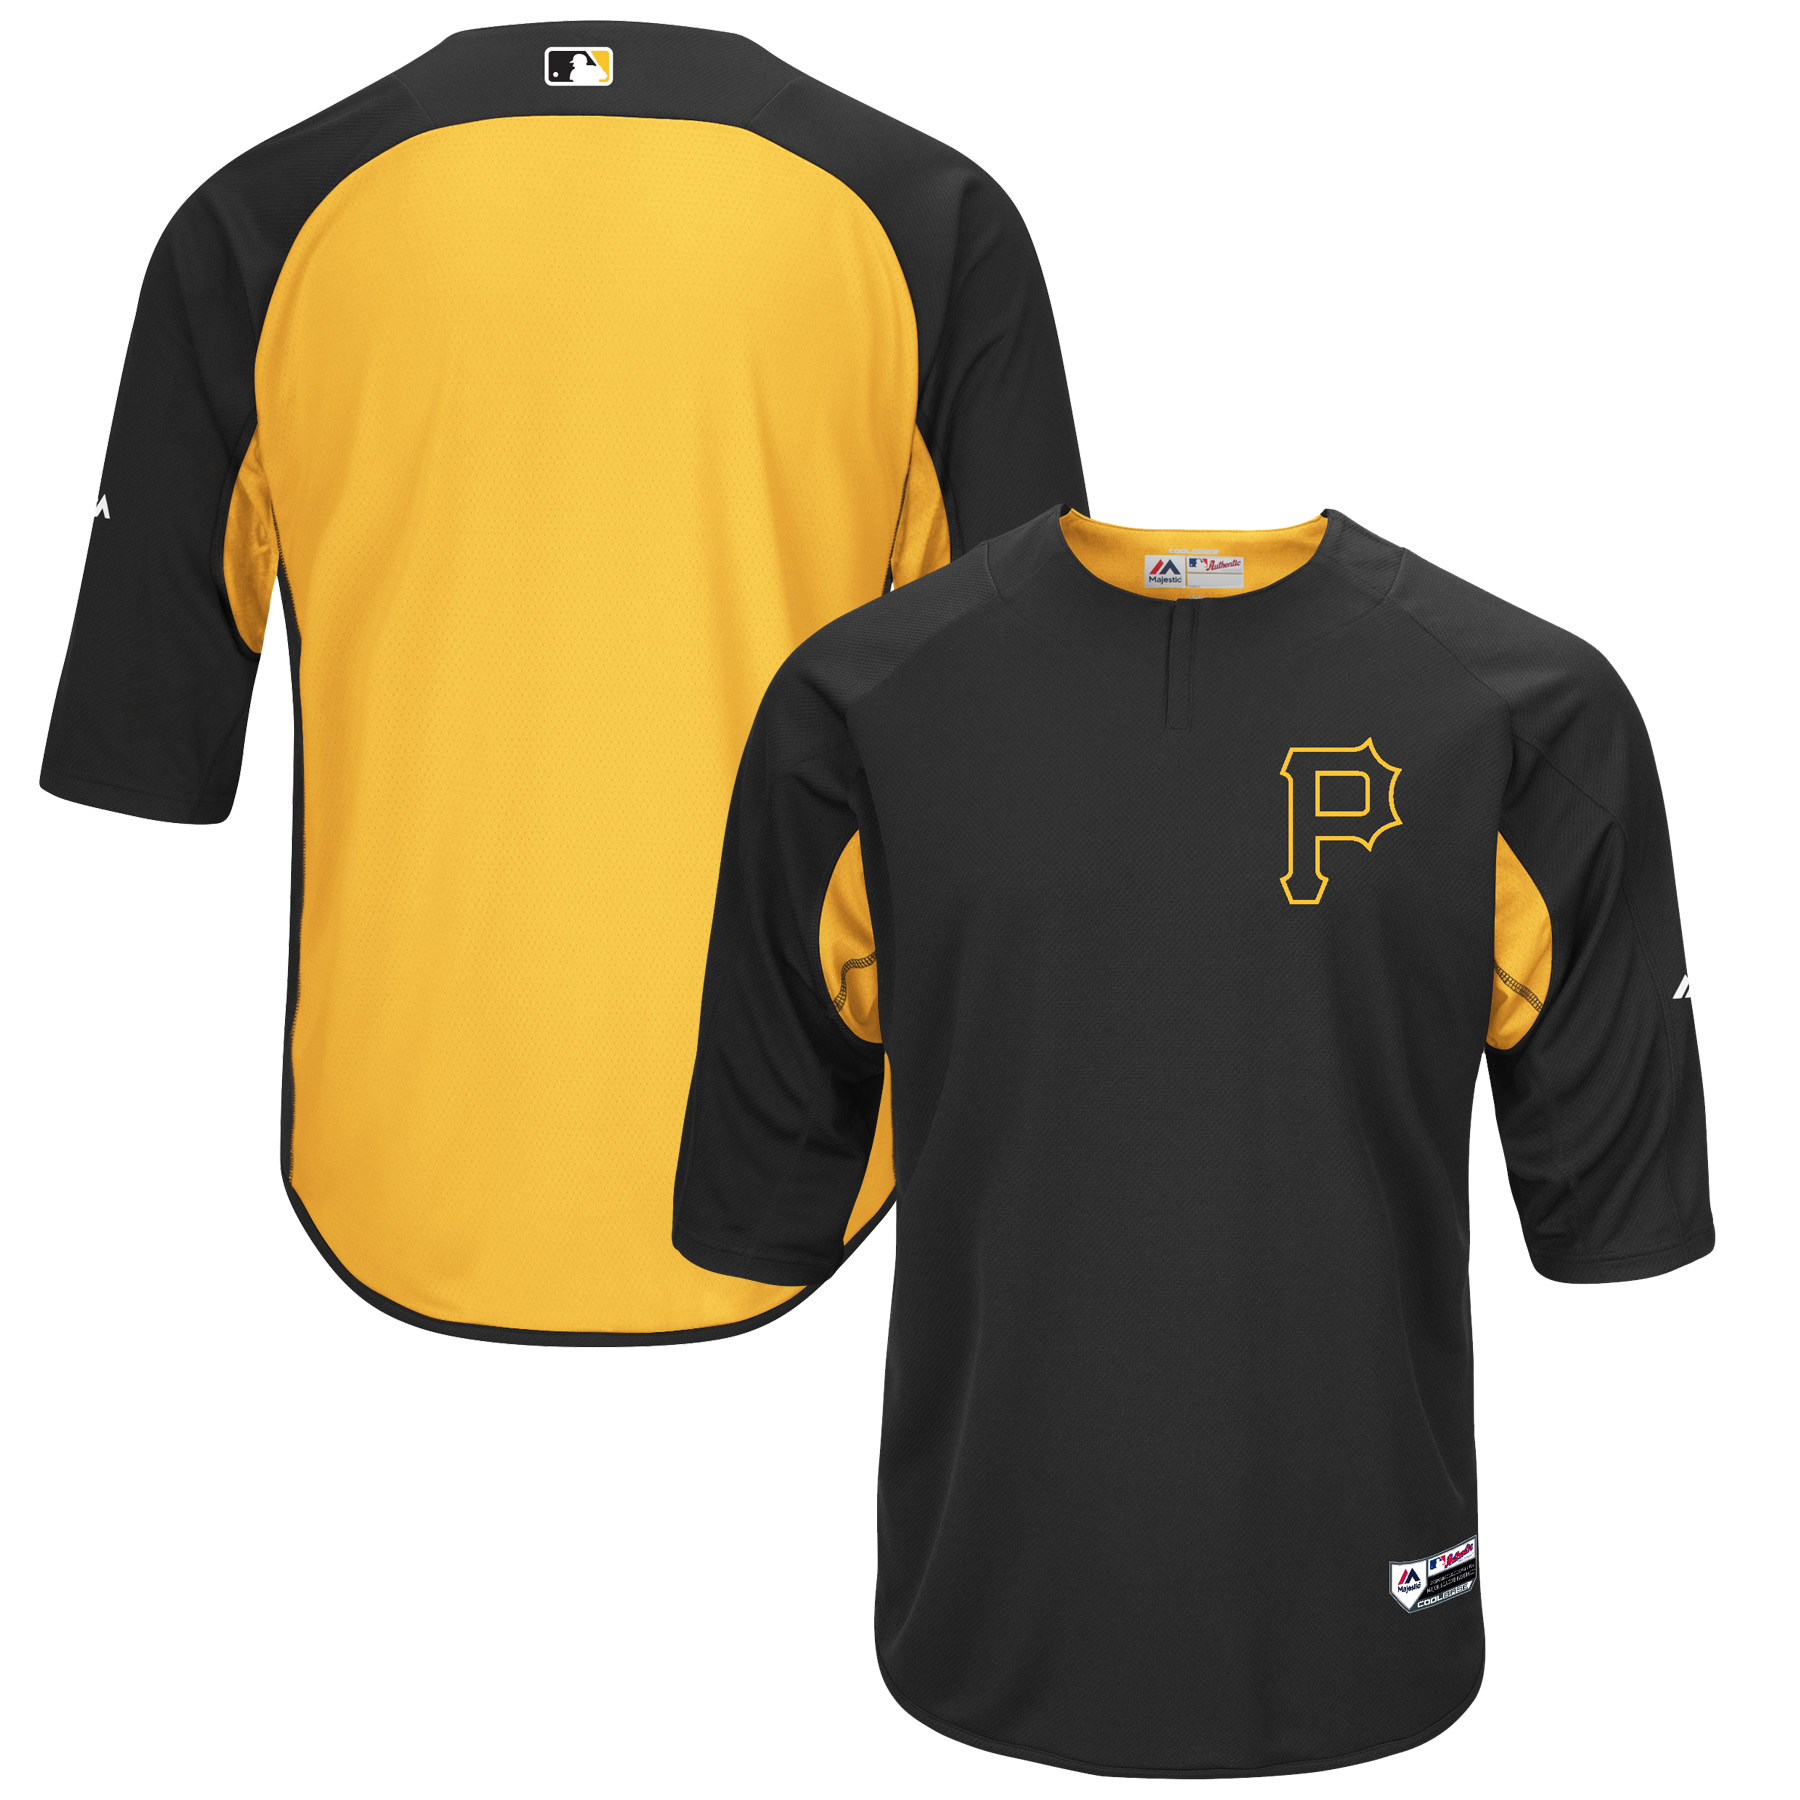 Pittsburgh Pirates Majestic Authentic Collection On-Field 3/4-Sleeve Batting Practice Jersey - Black/Gold